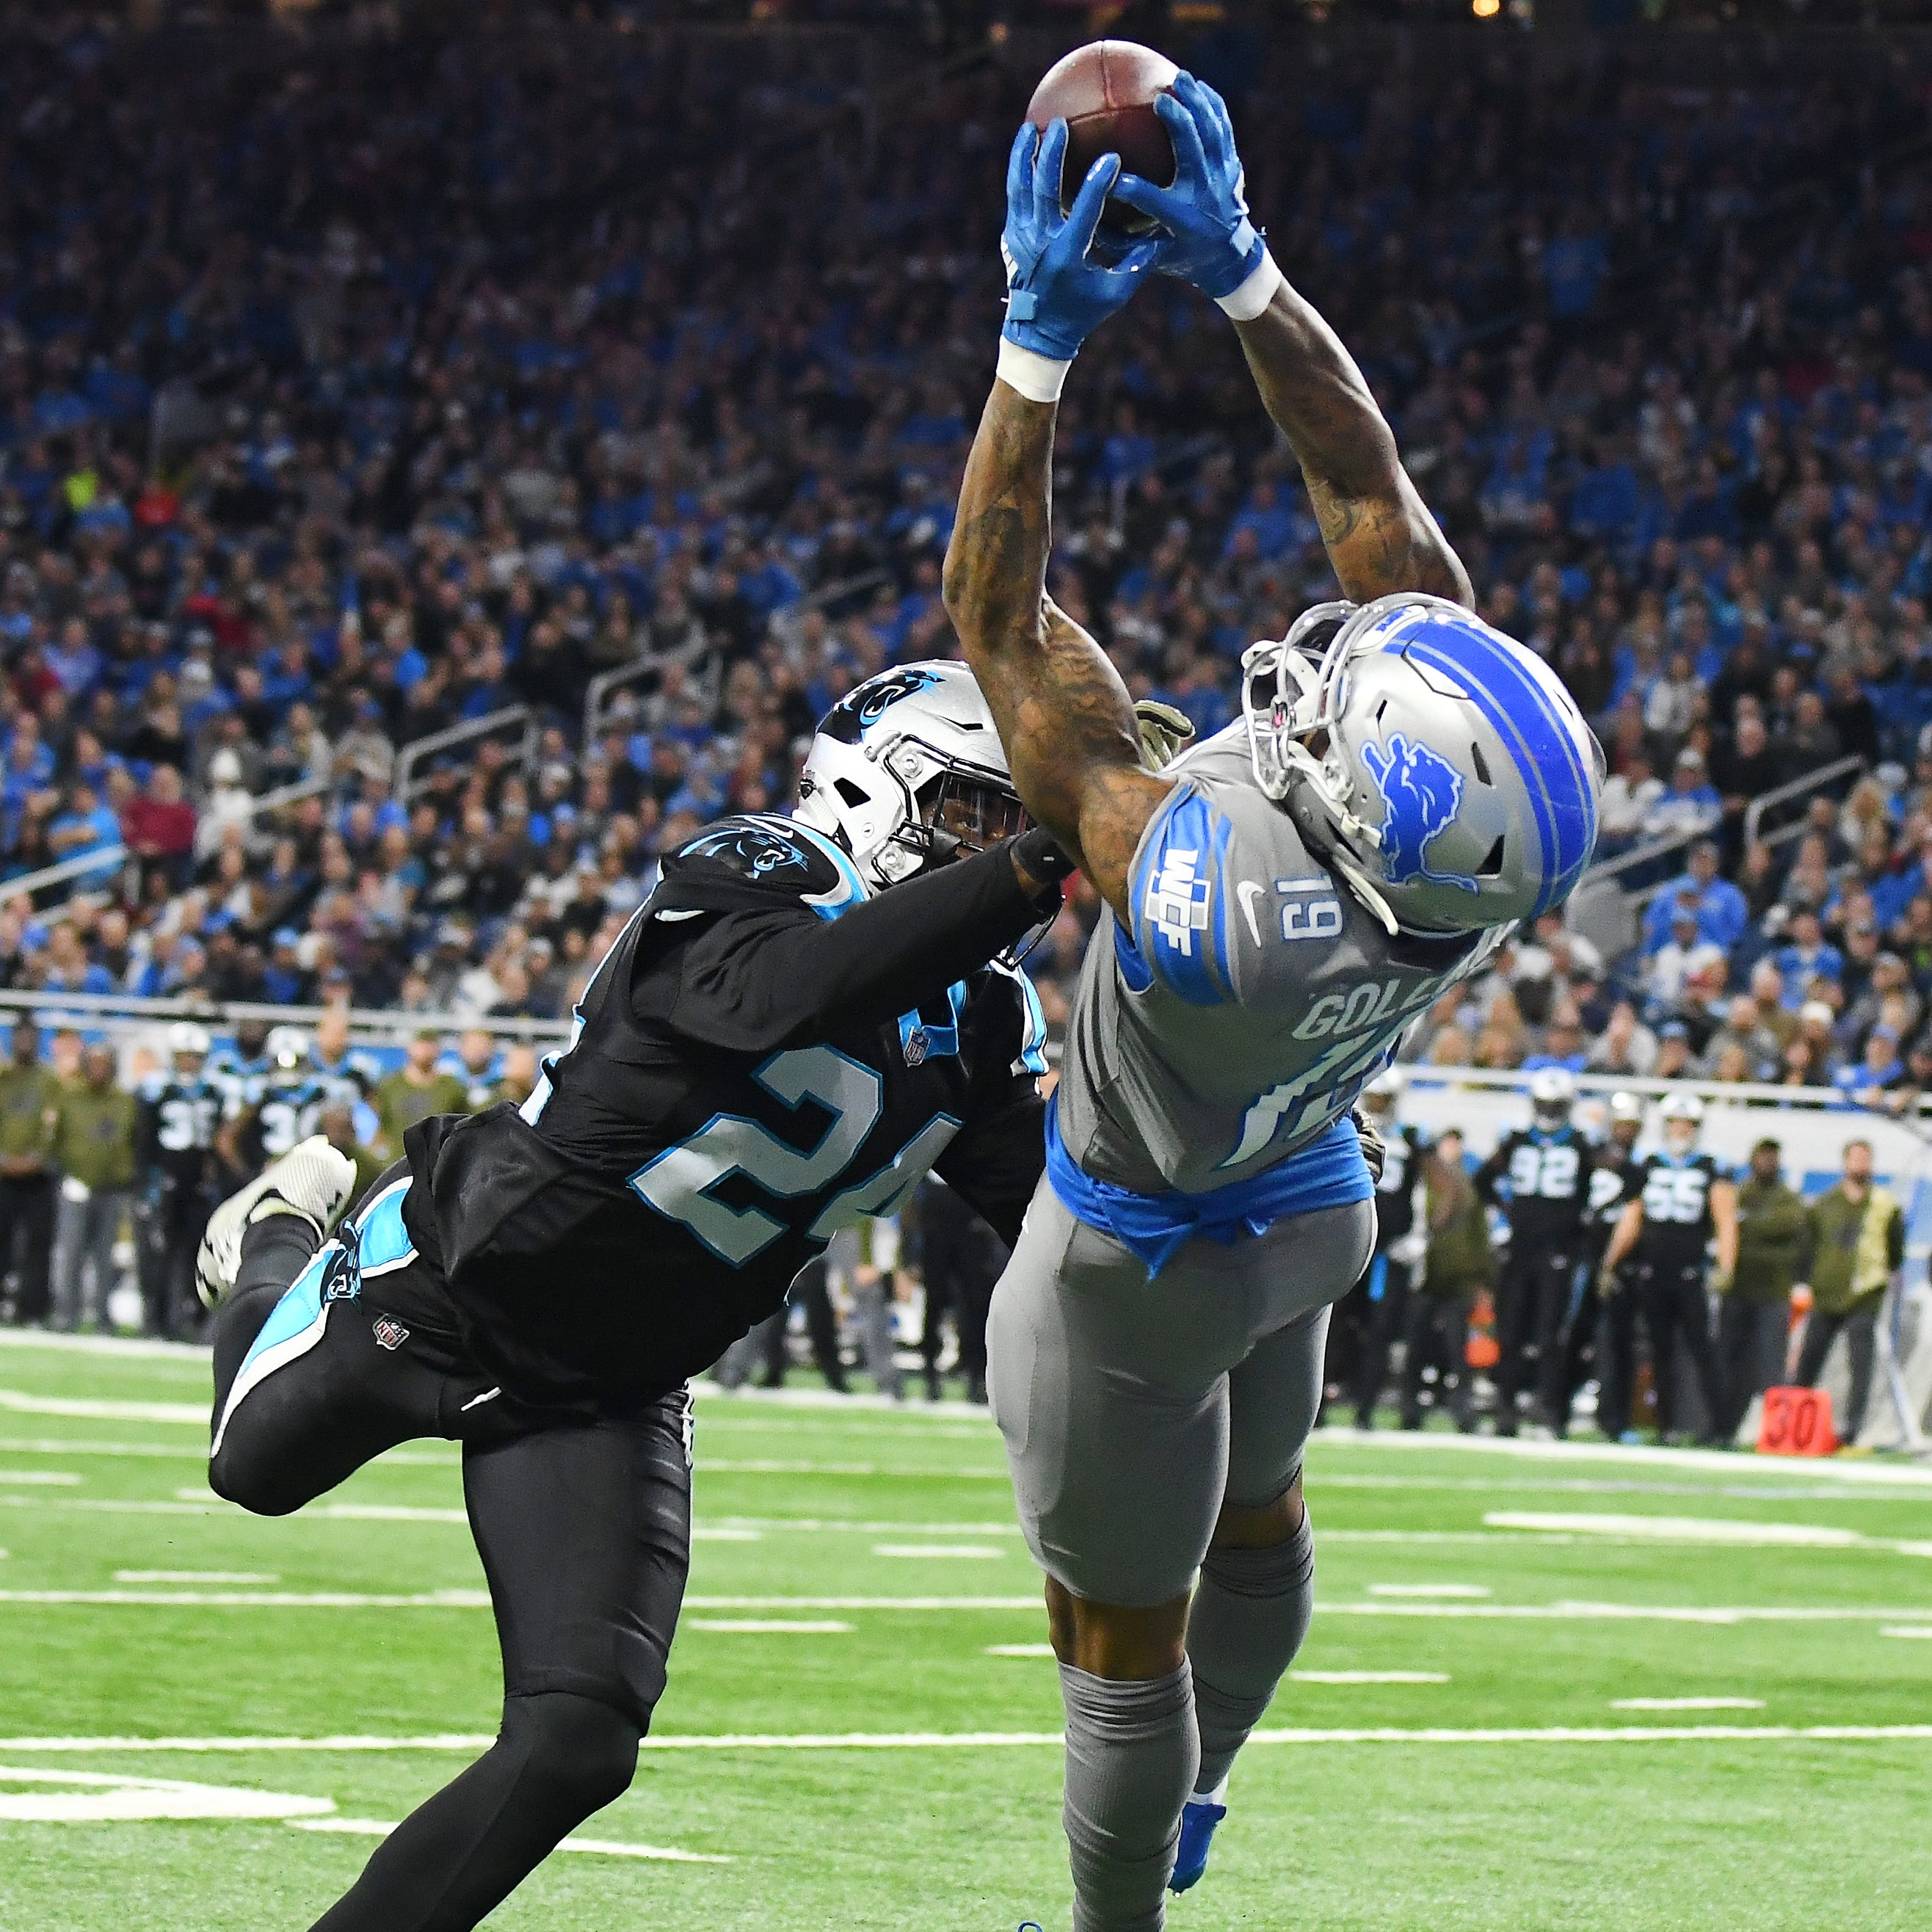 Lions hold on to snap skid as Panthers' gamble backfires